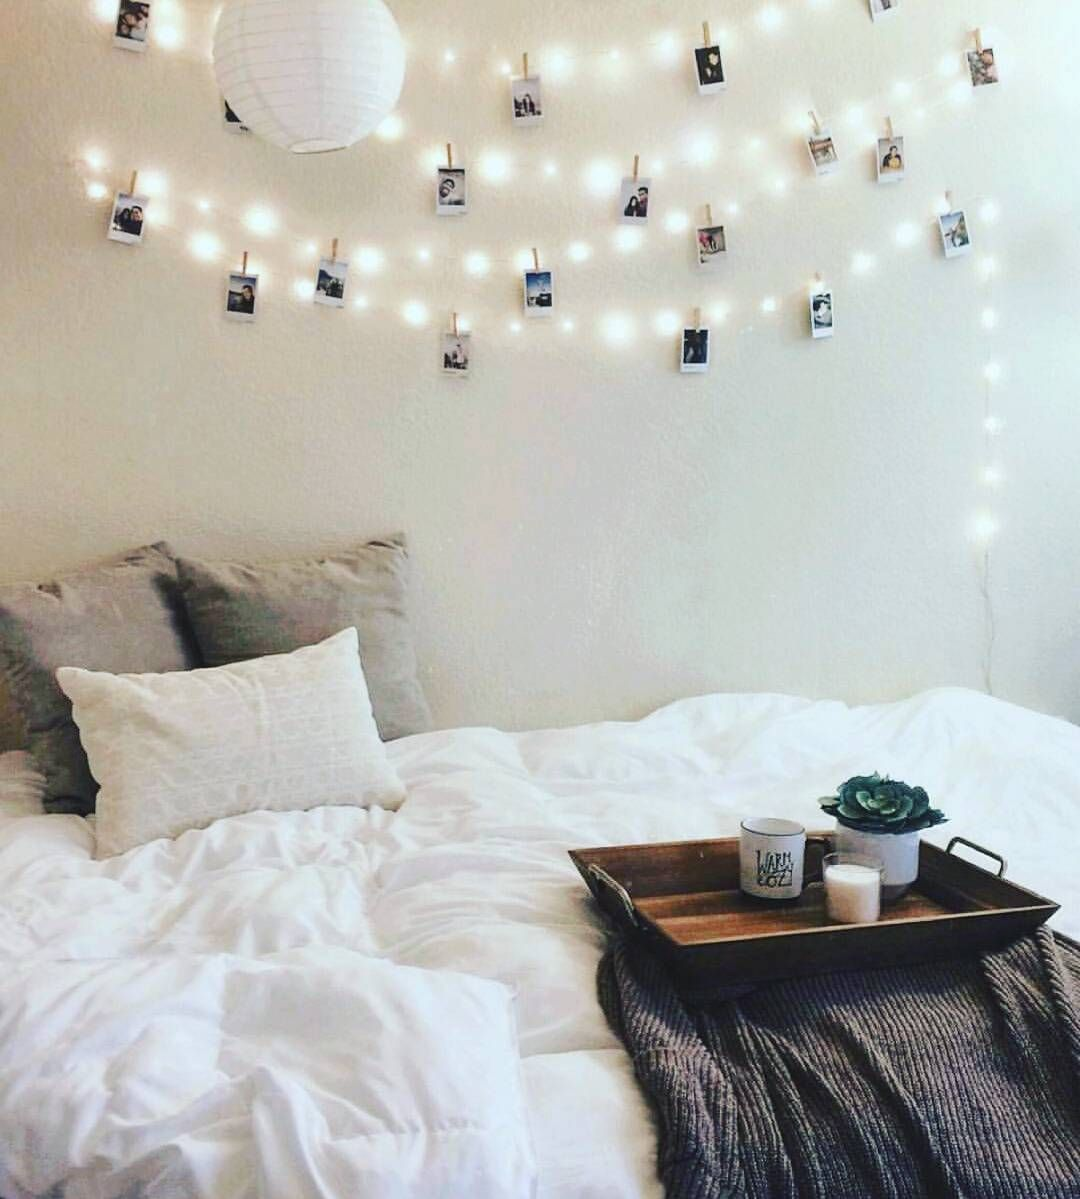 épinglé par Morgan Hol b sur Redecorating Pinterest